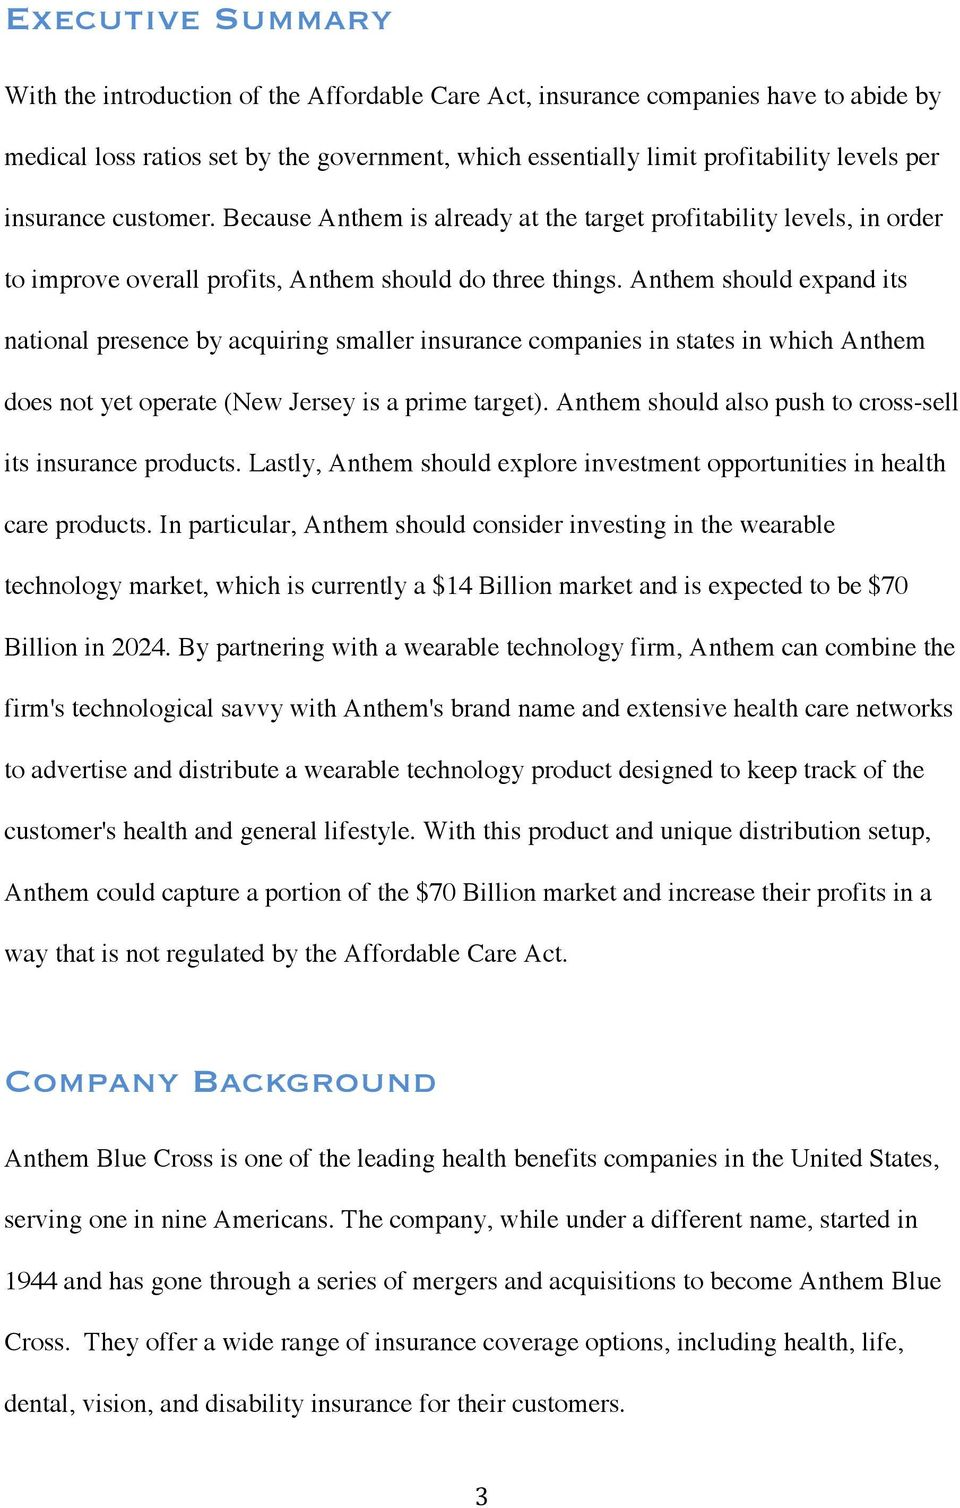 Anthem should expand its national presence by acquiring smaller insurance companies in states in which Anthem does not yet operate (New Jersey is a prime target).